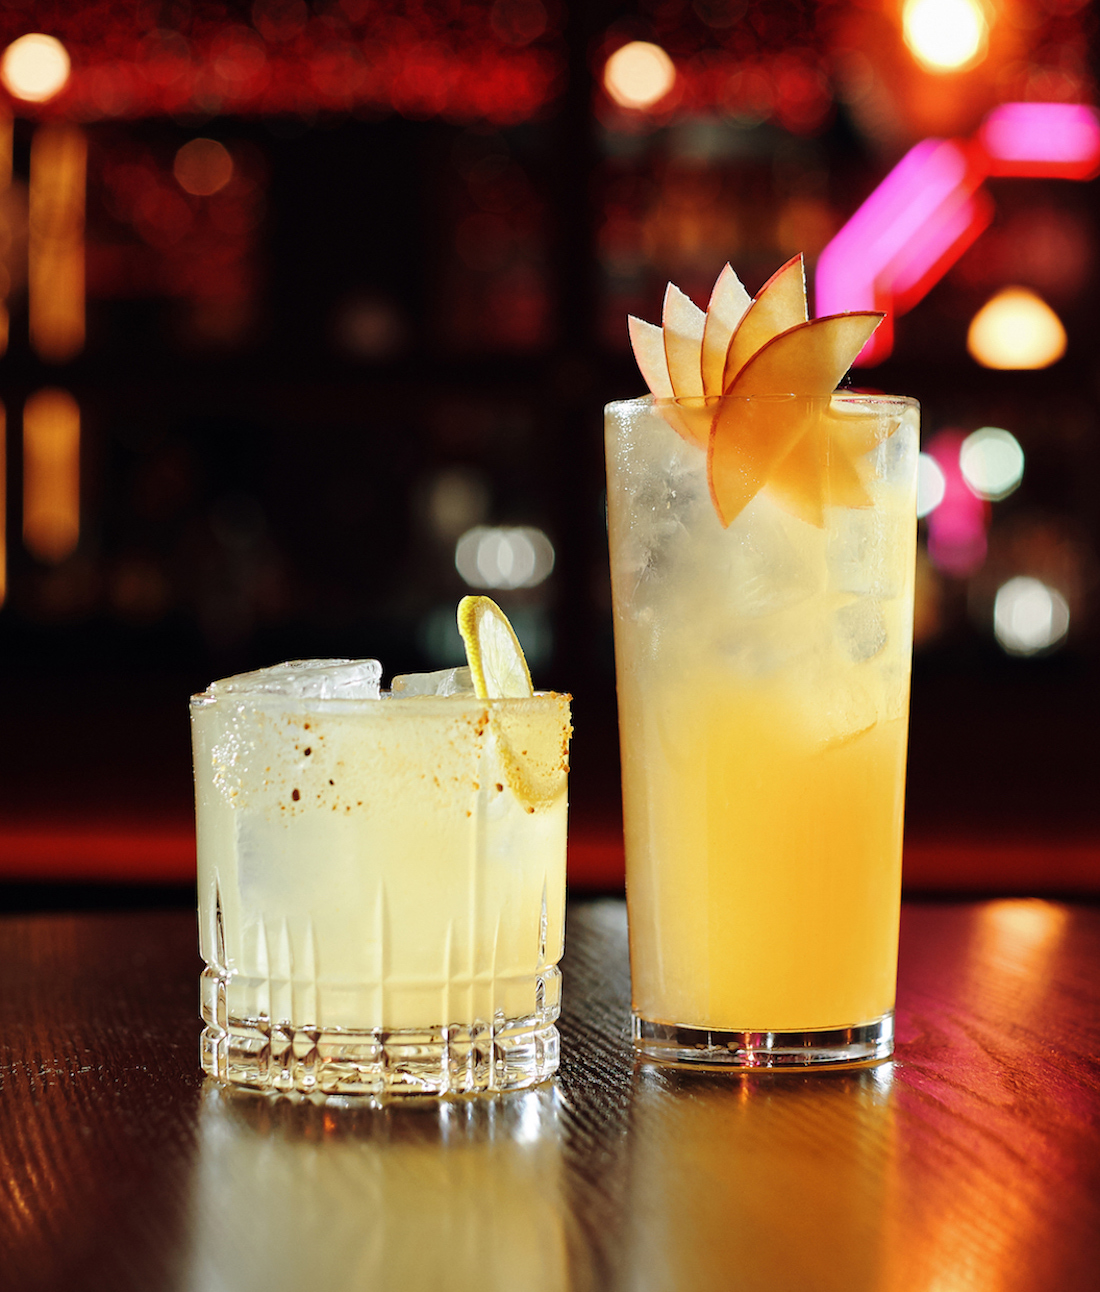 Two yellow-hued cocktails are lined up on the bar.